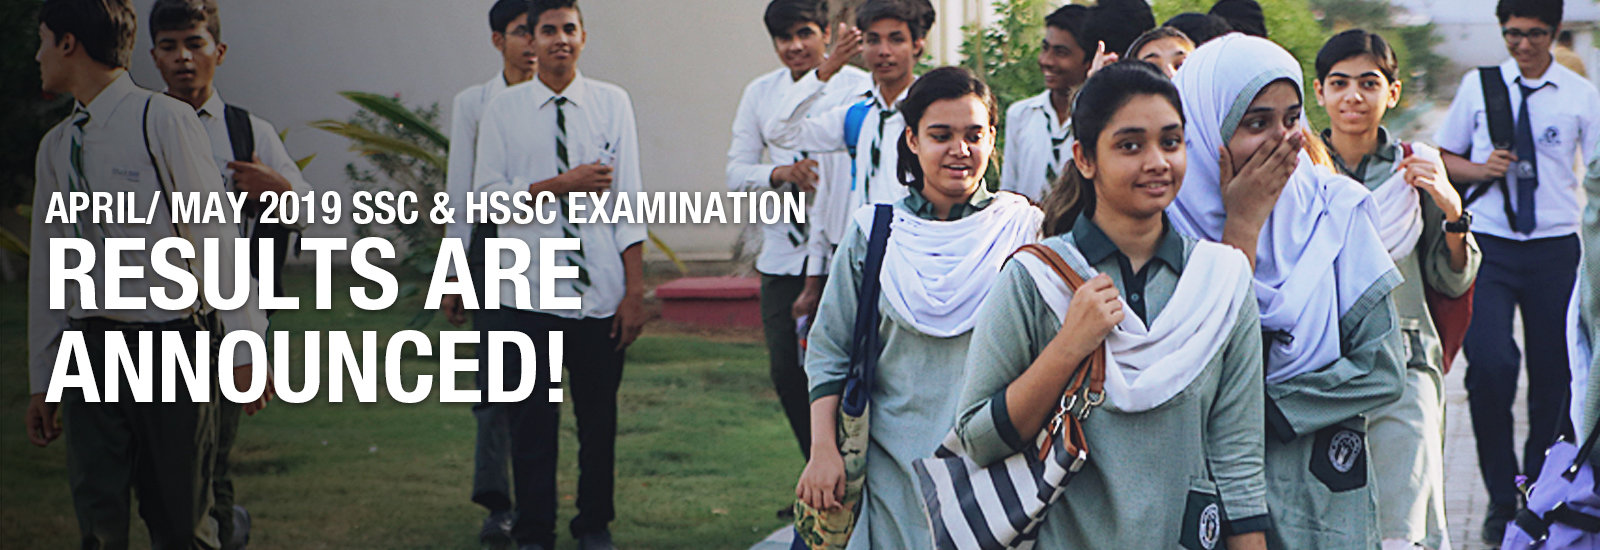 News Aku April 2010 Eb Announces Ssc And Hssc Overall Group Wise Positions For May 2018 Examinations